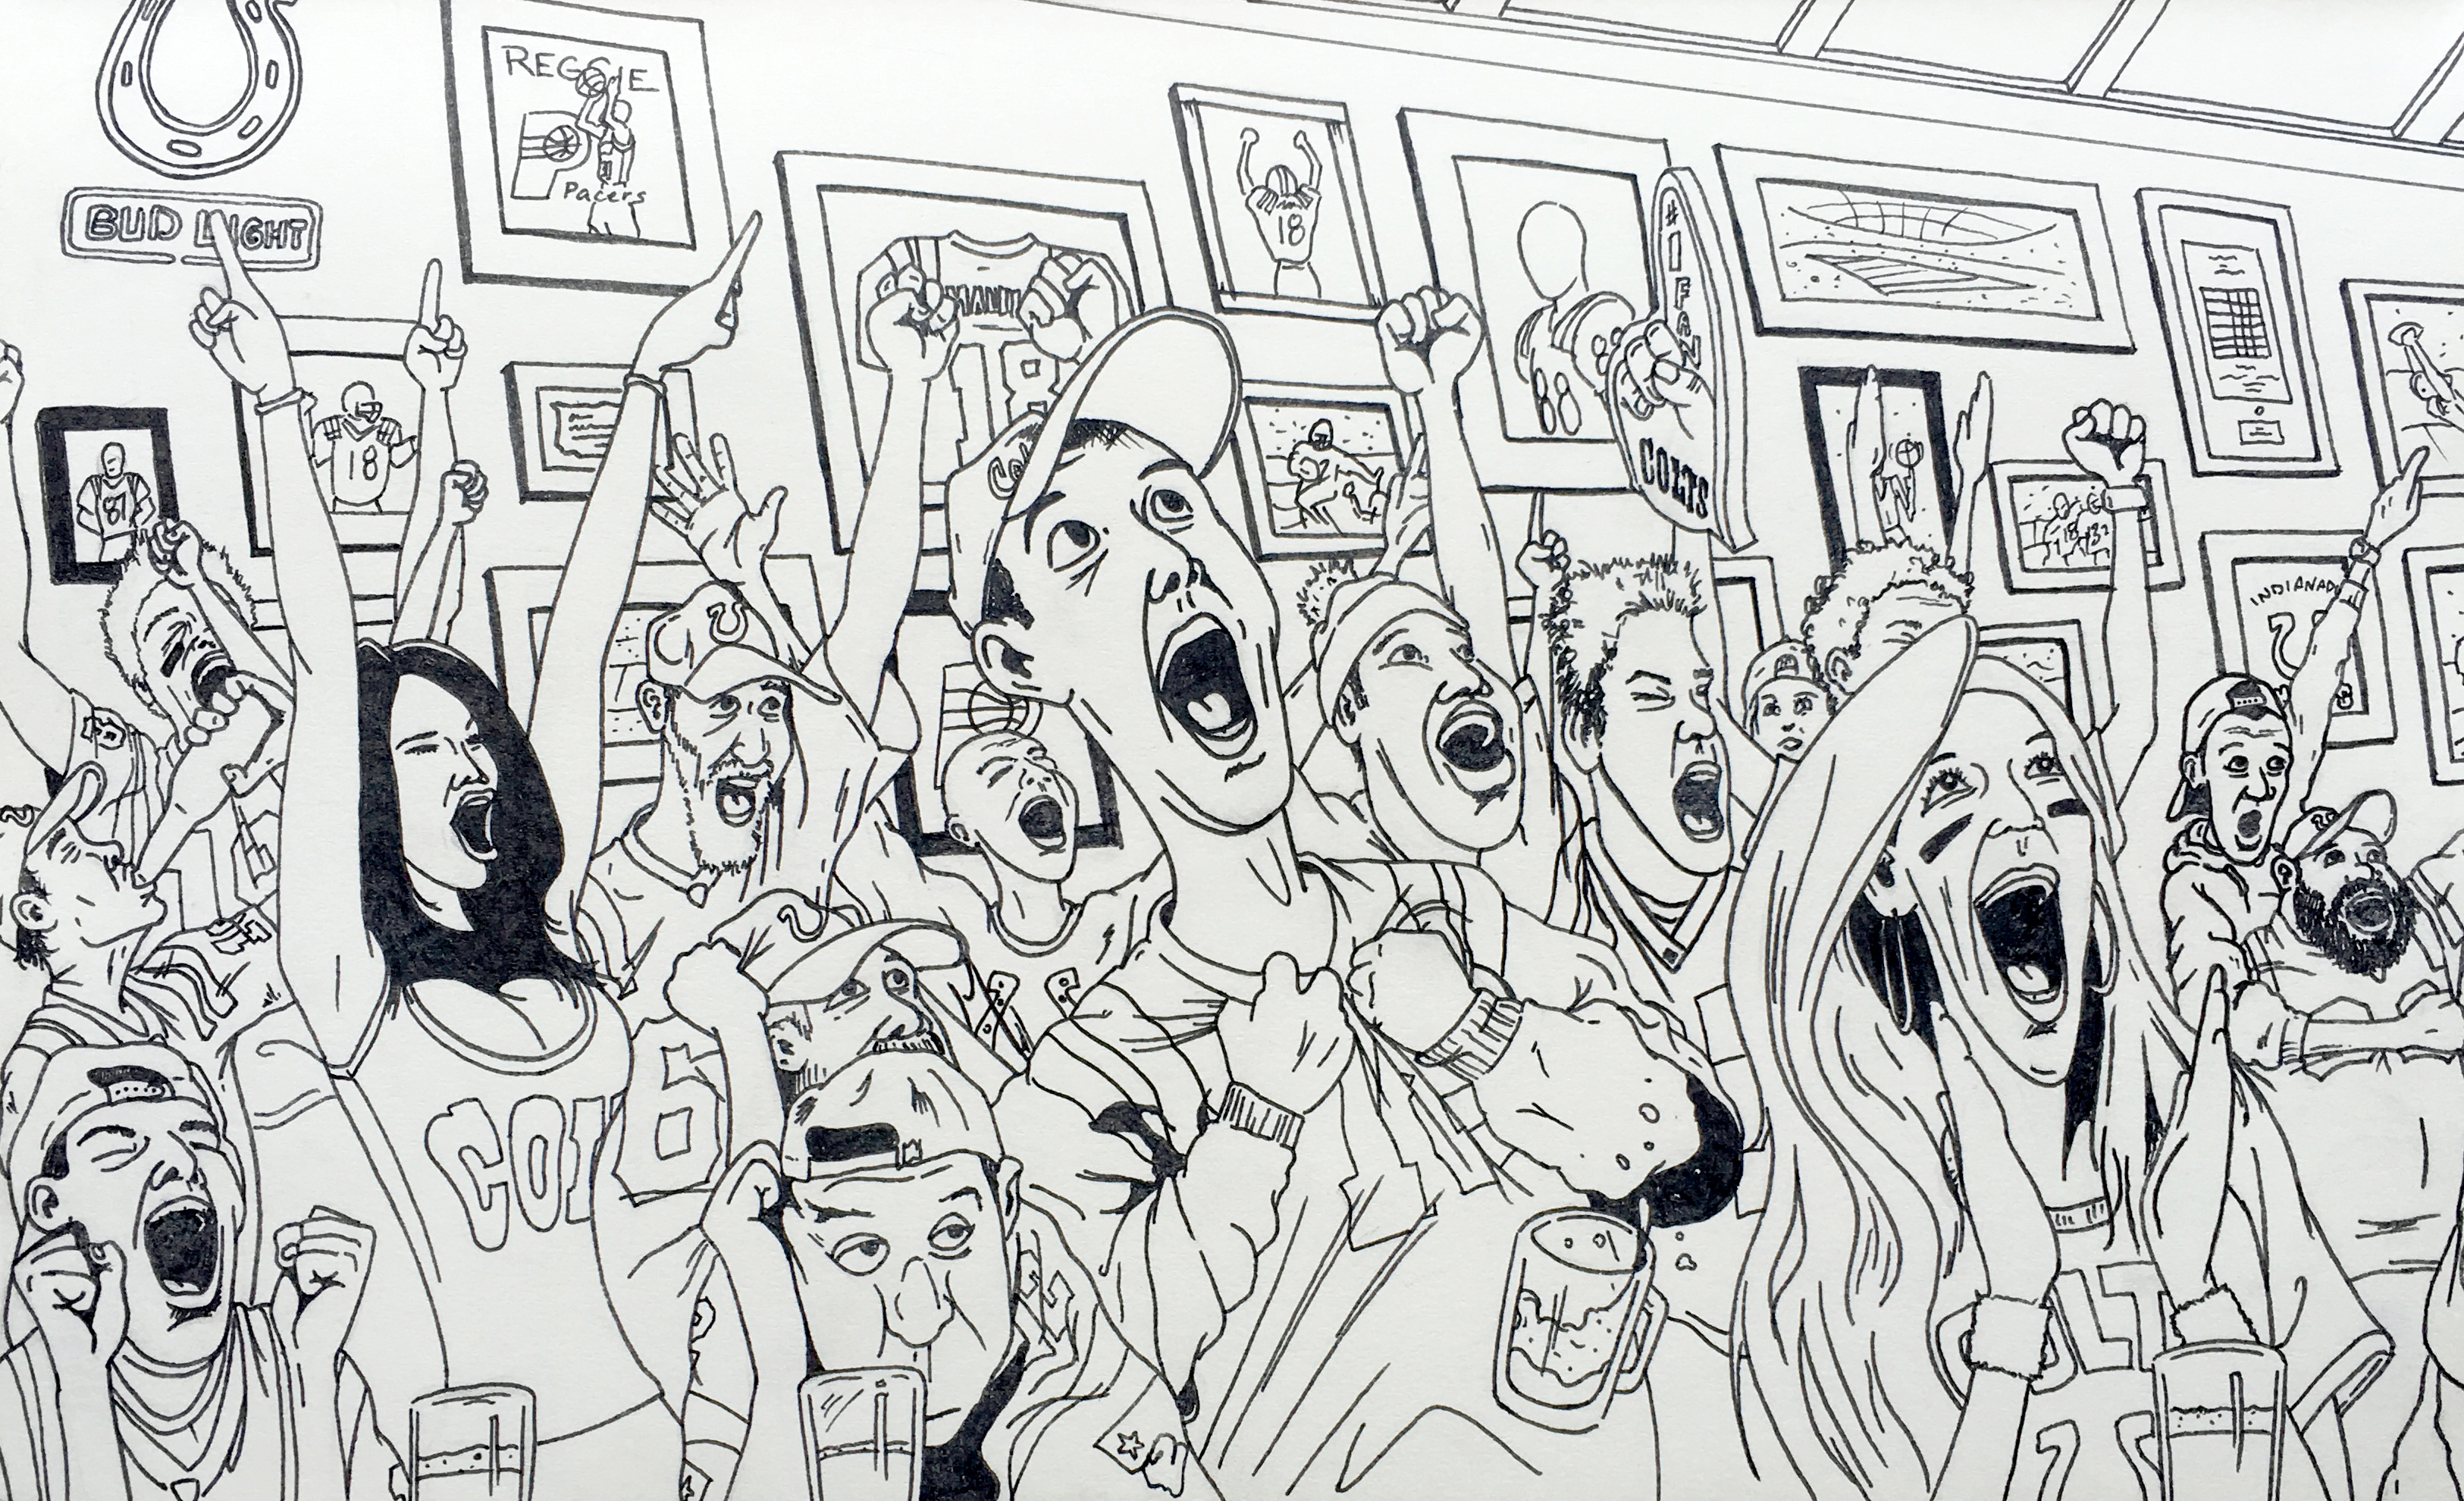 Black & White ink illustration of a crowd in a sports bar